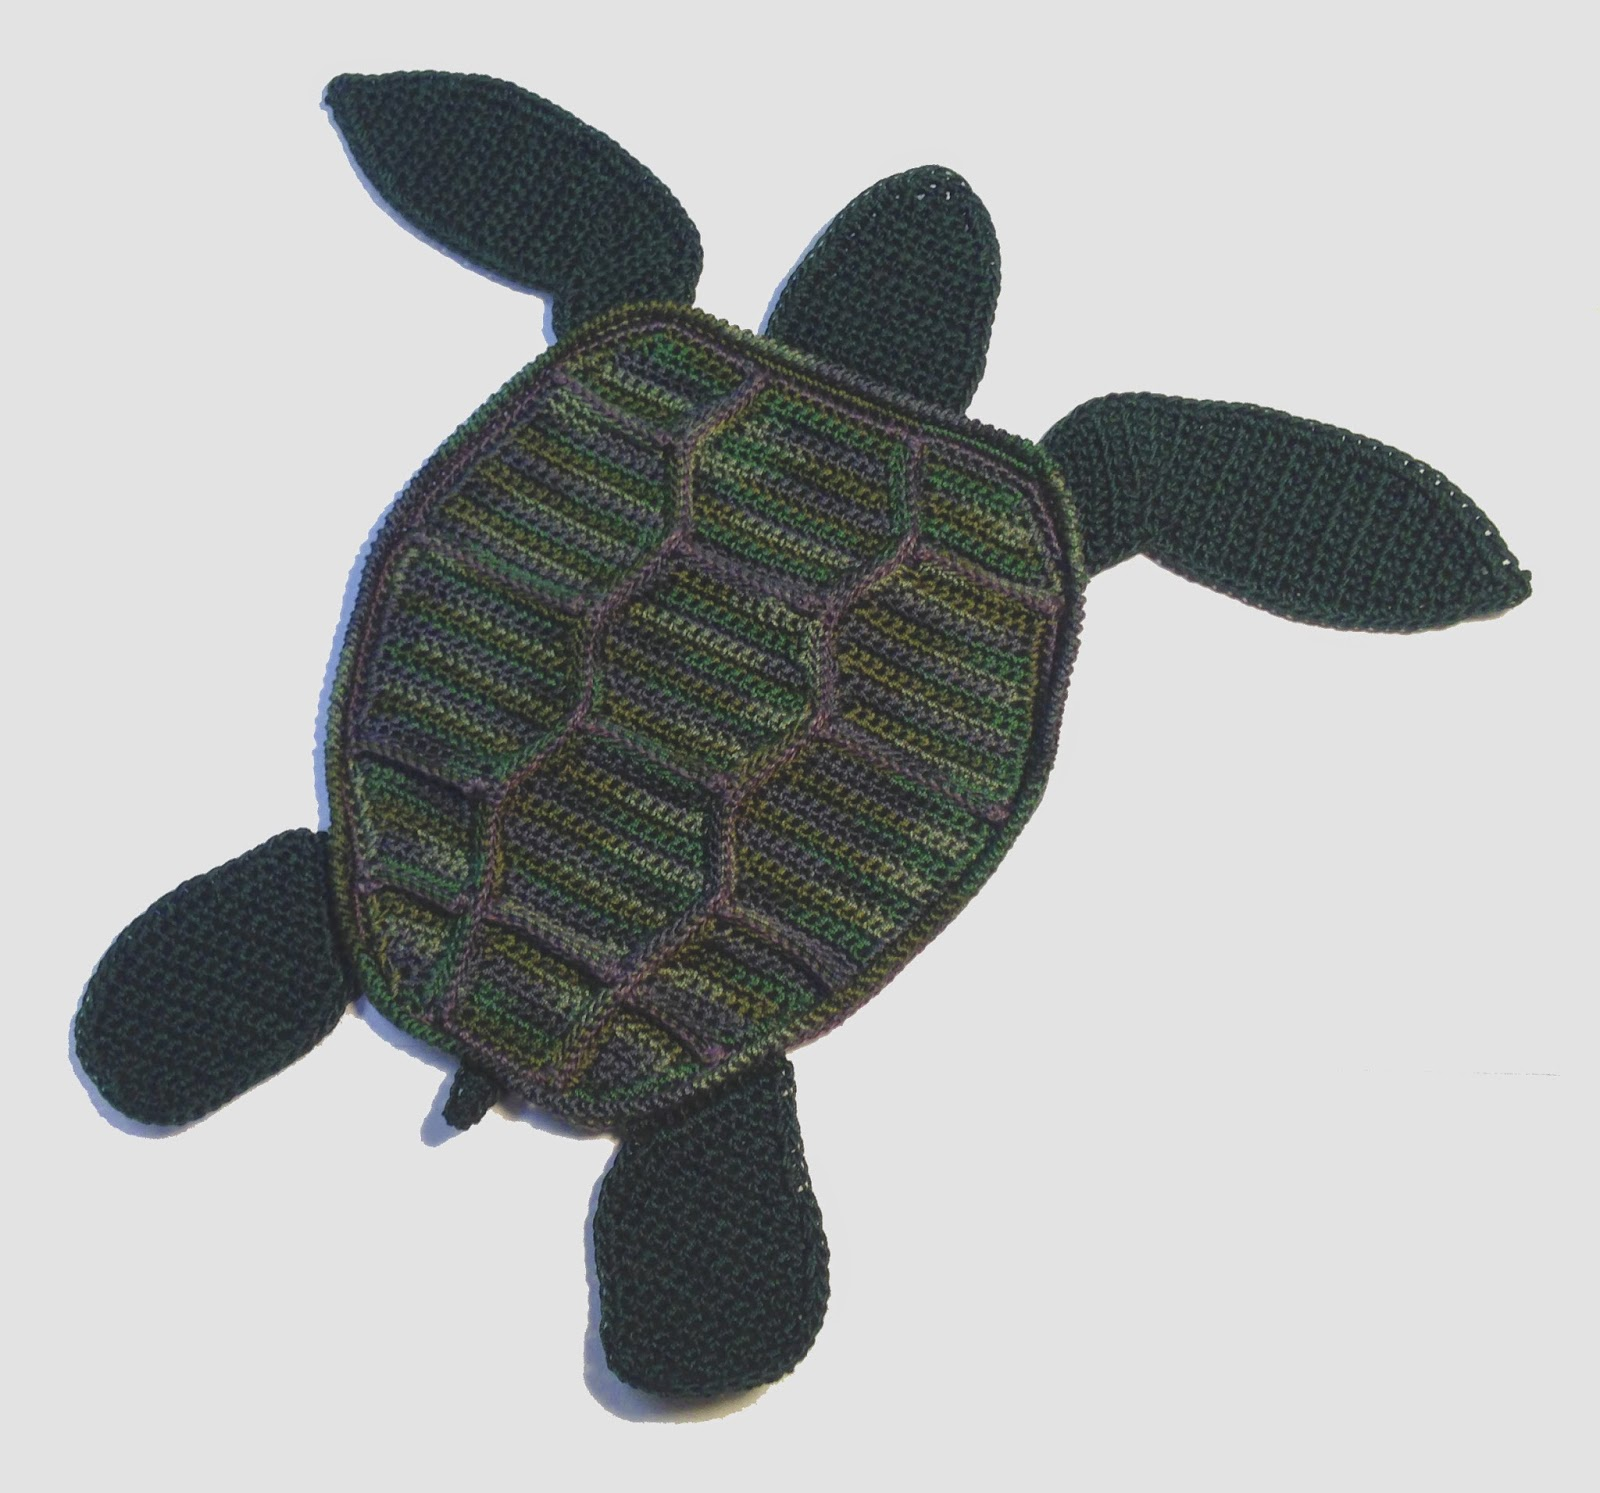 Monster Crochet New Pattern Sea Turtle Applique